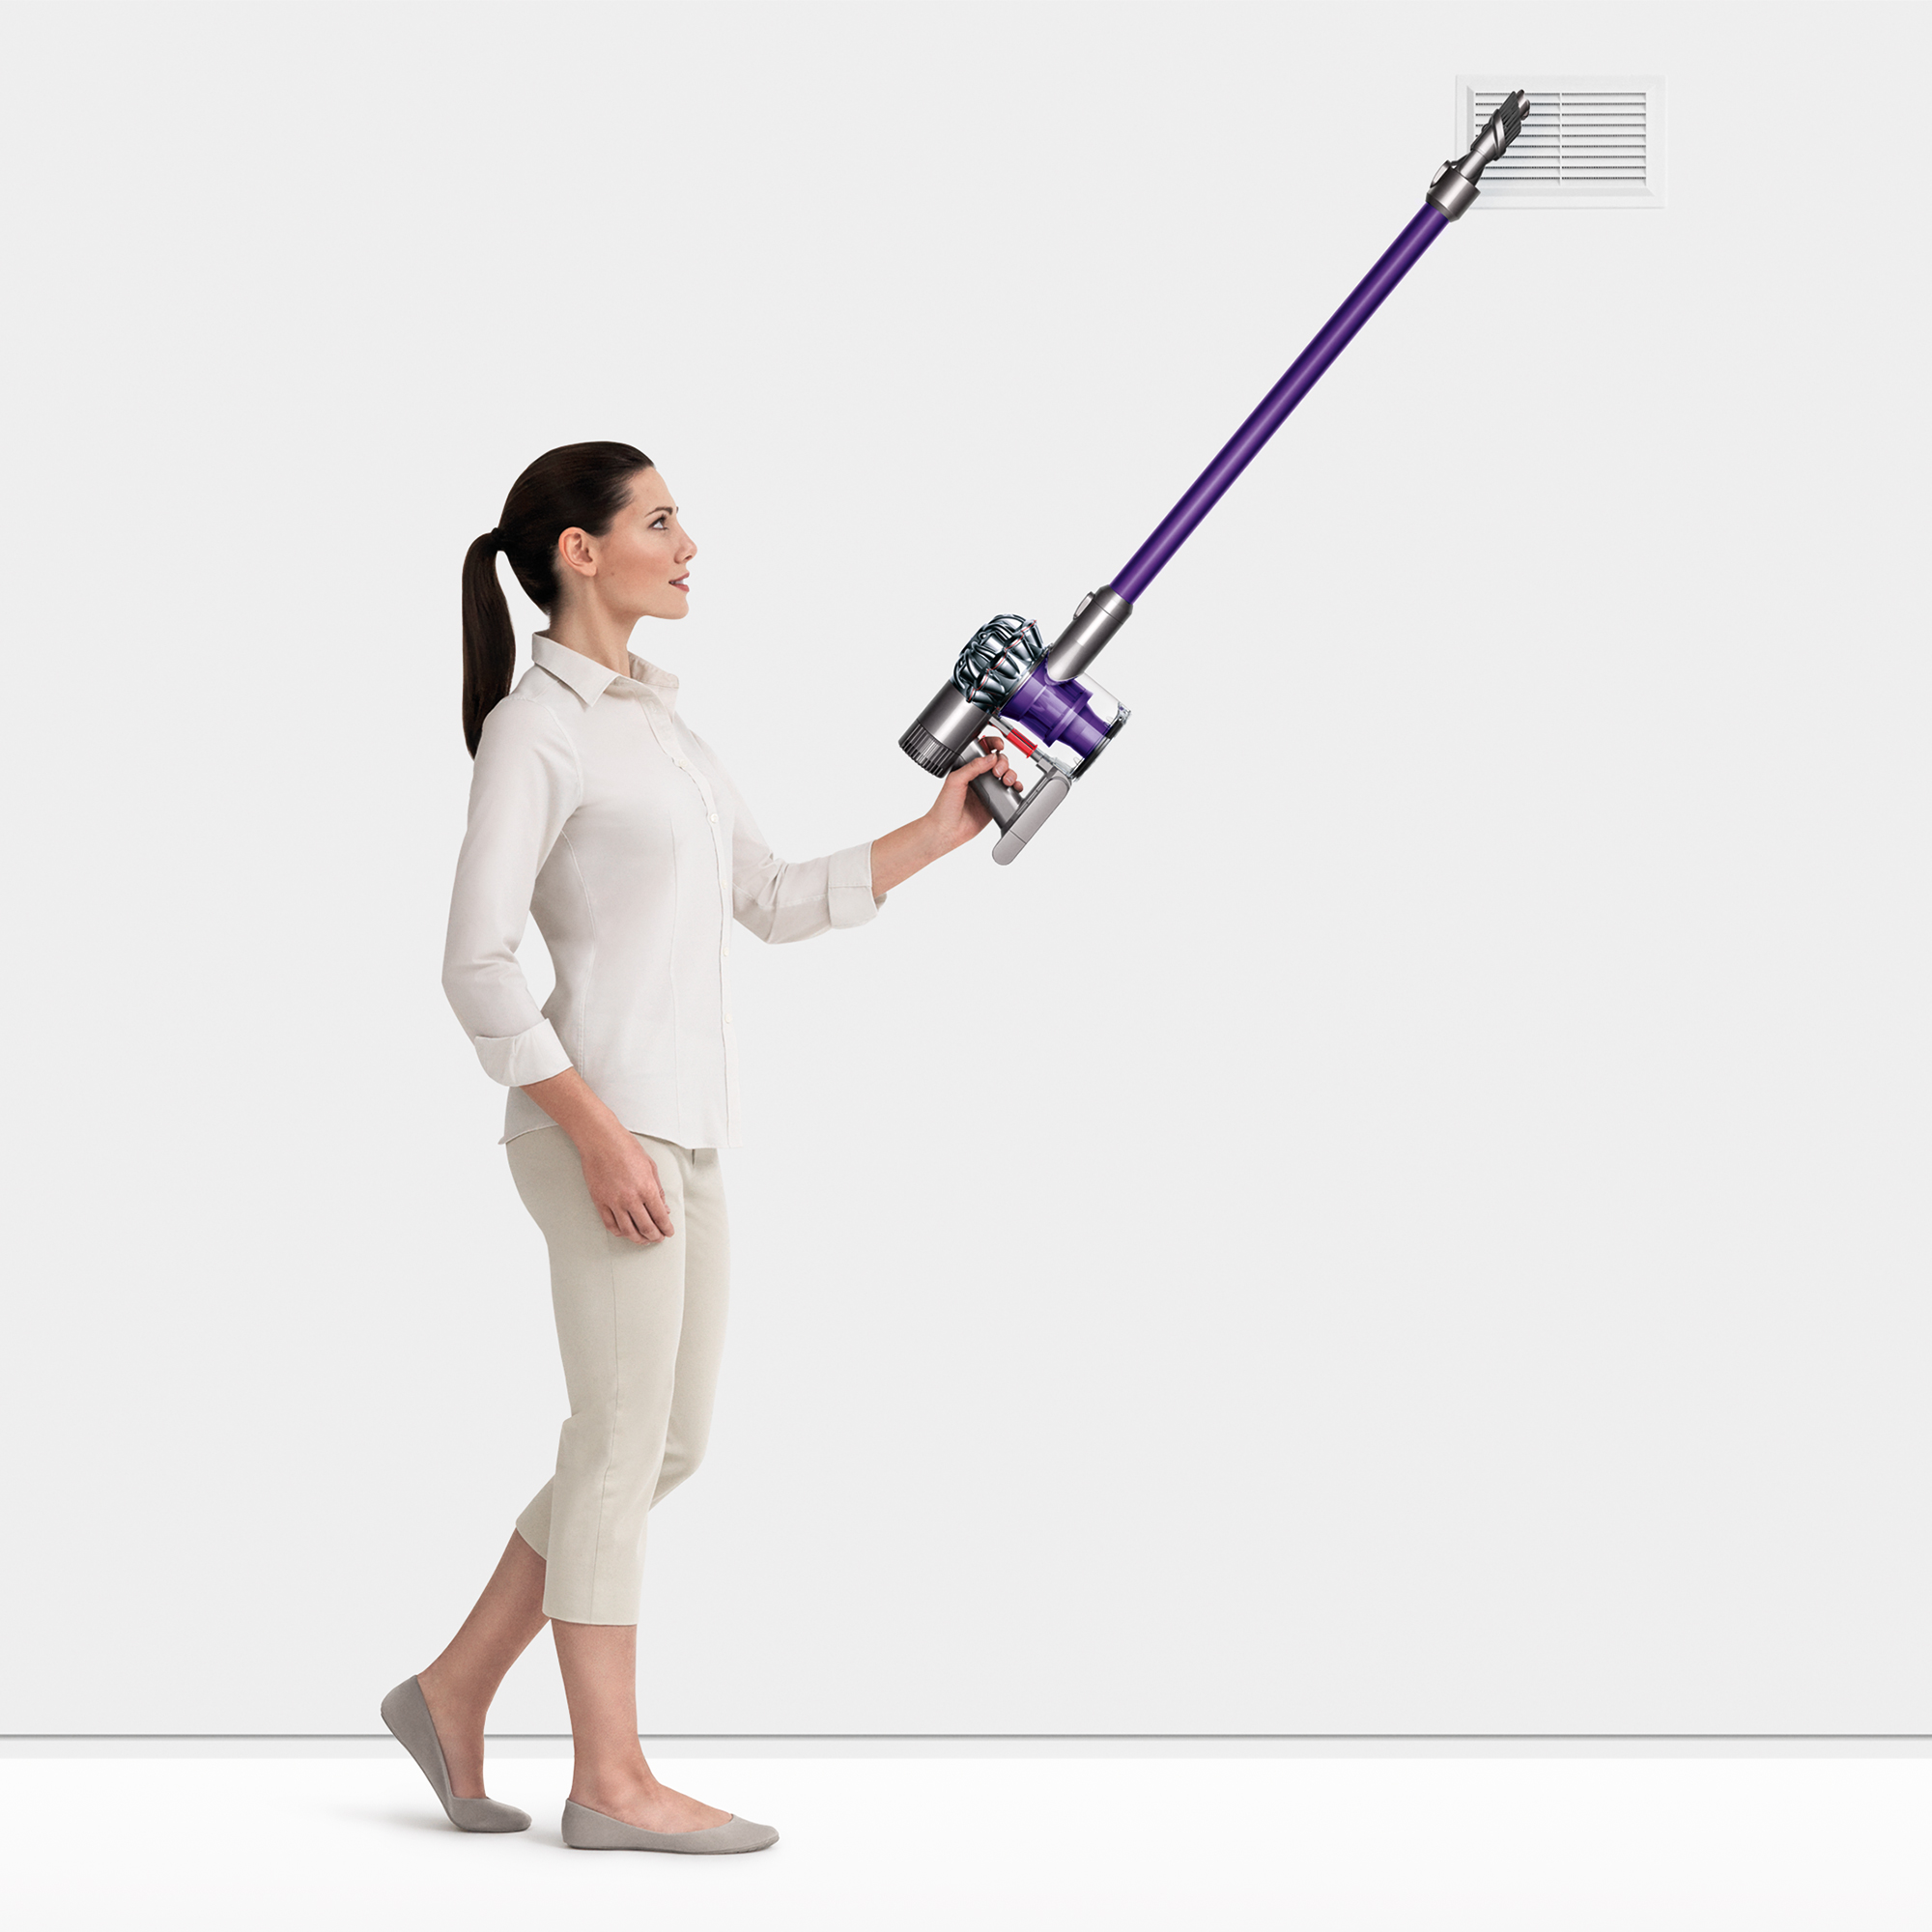 Dyson-V6-Animal-Cordless-Vacuum-Refurbished thumbnail 4